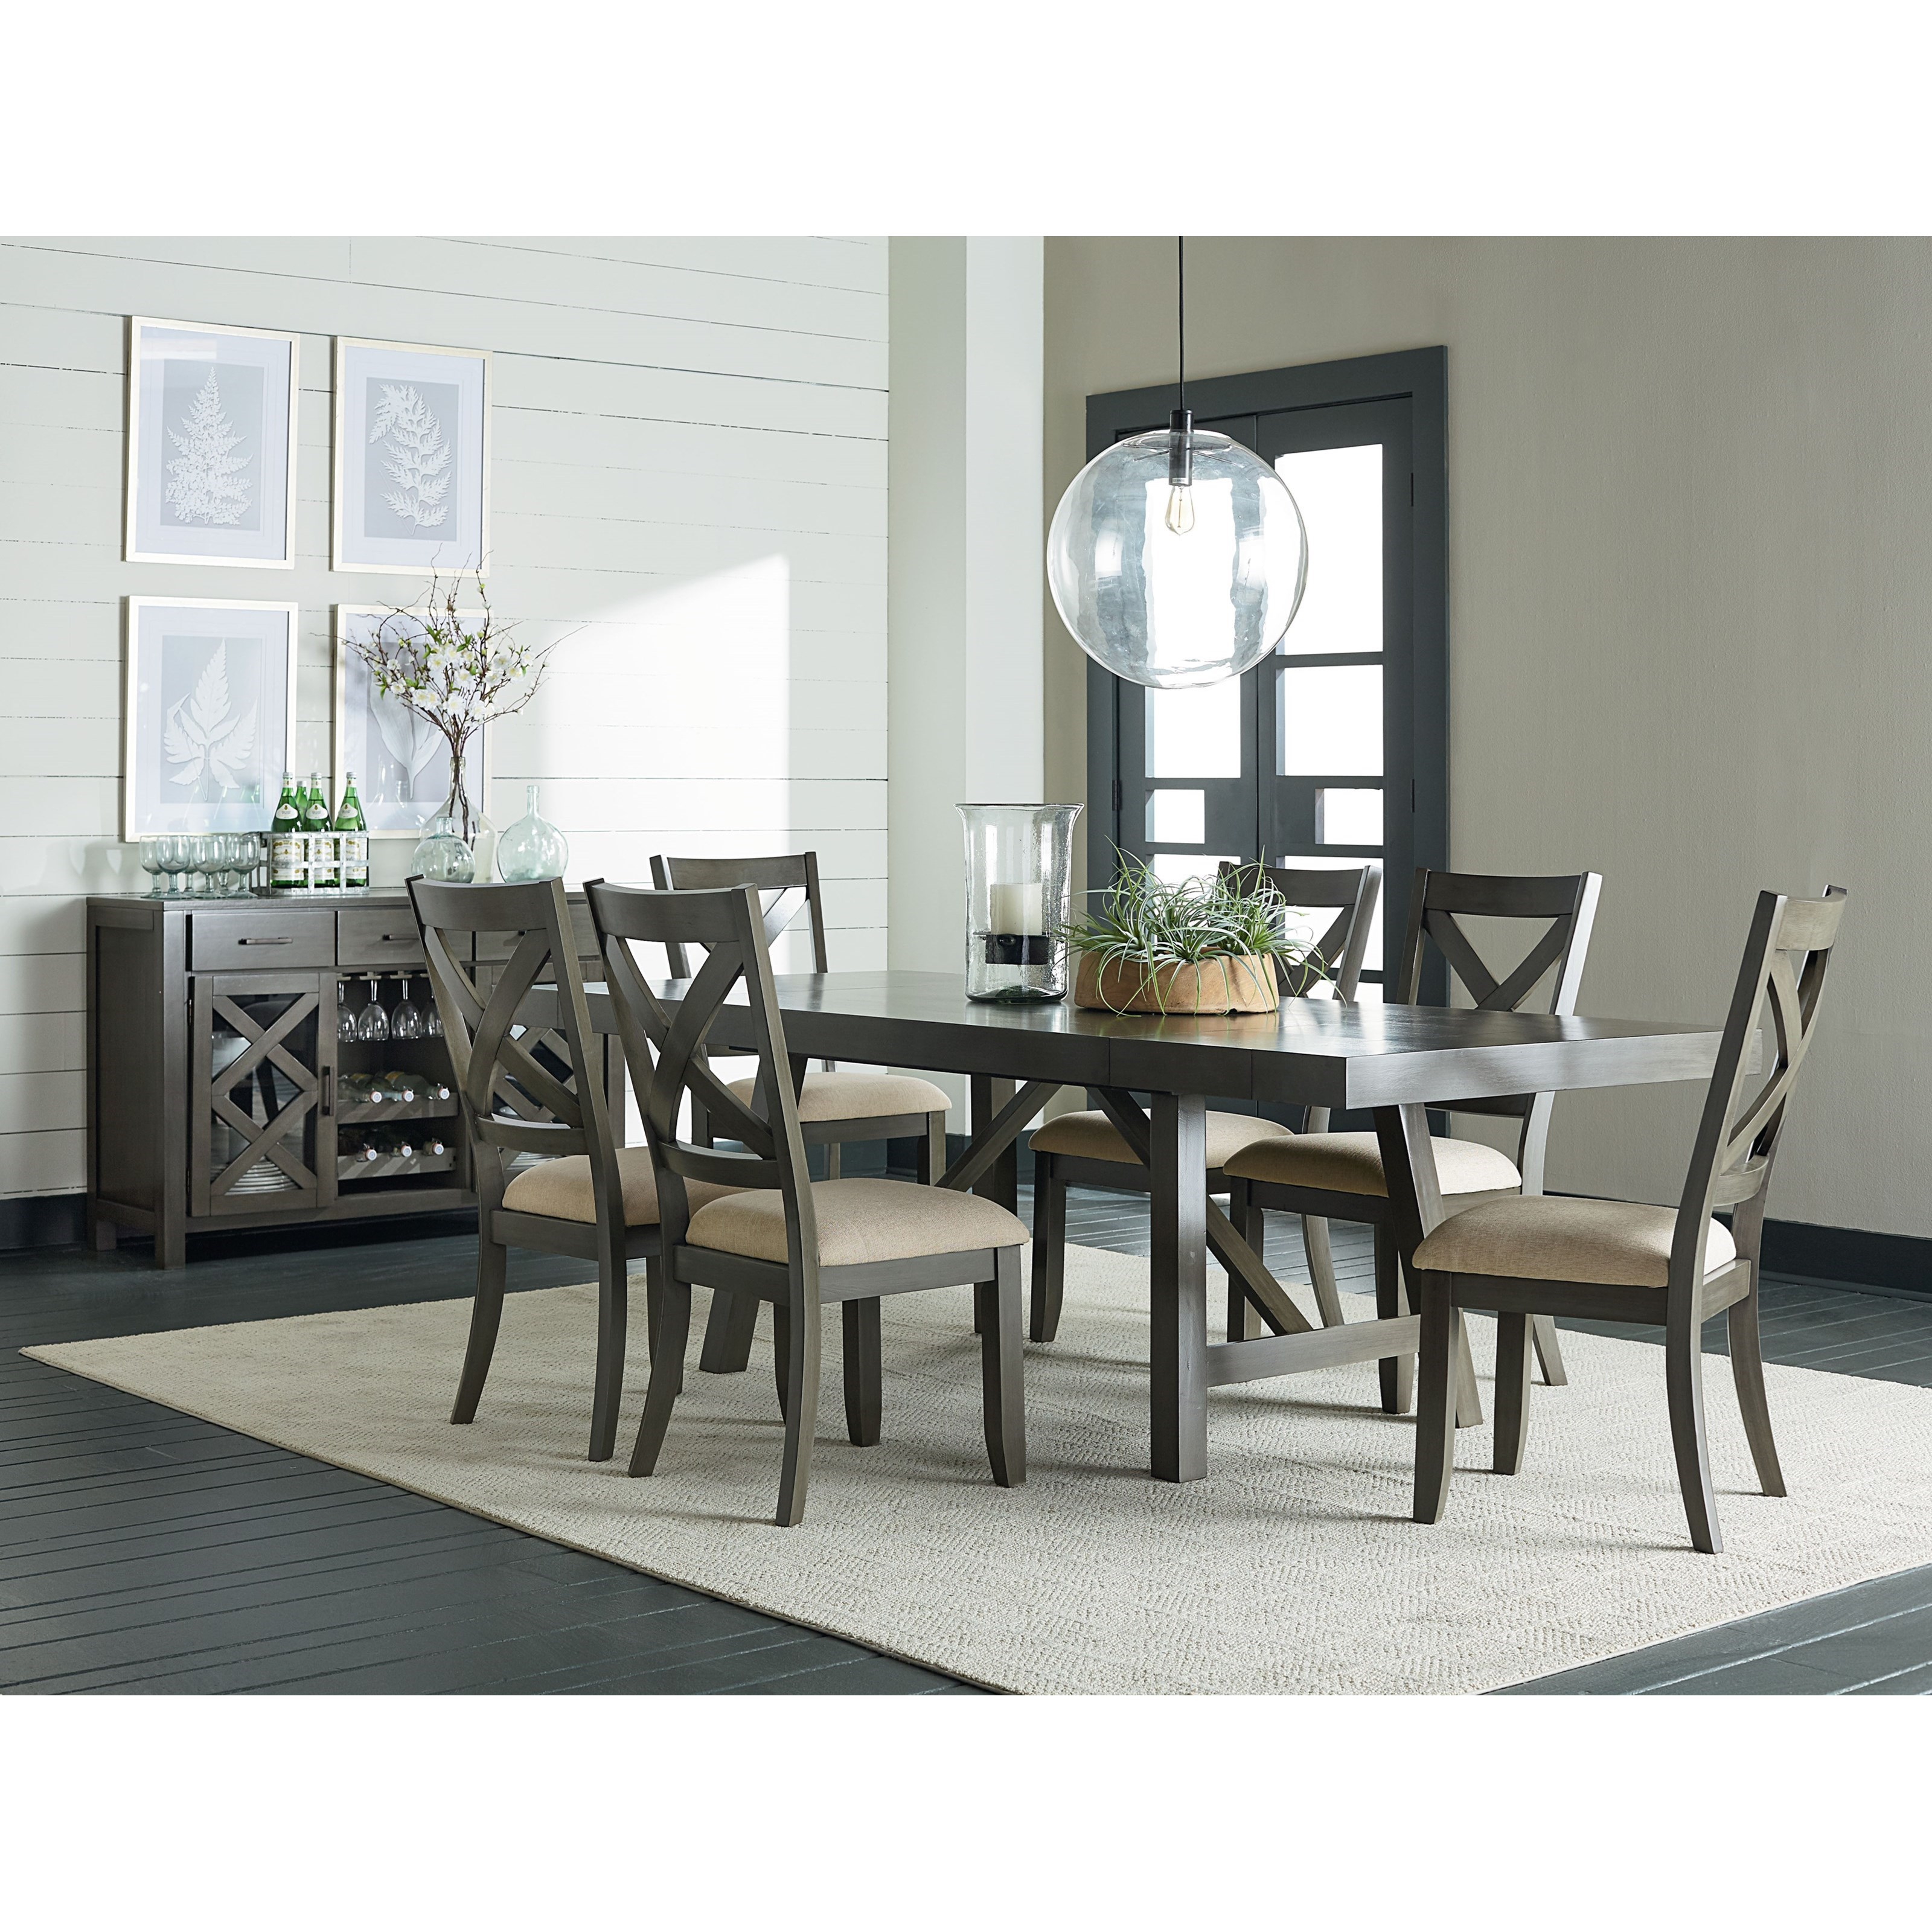 Standard furniture omaha grey casual dining room group for Informal dining